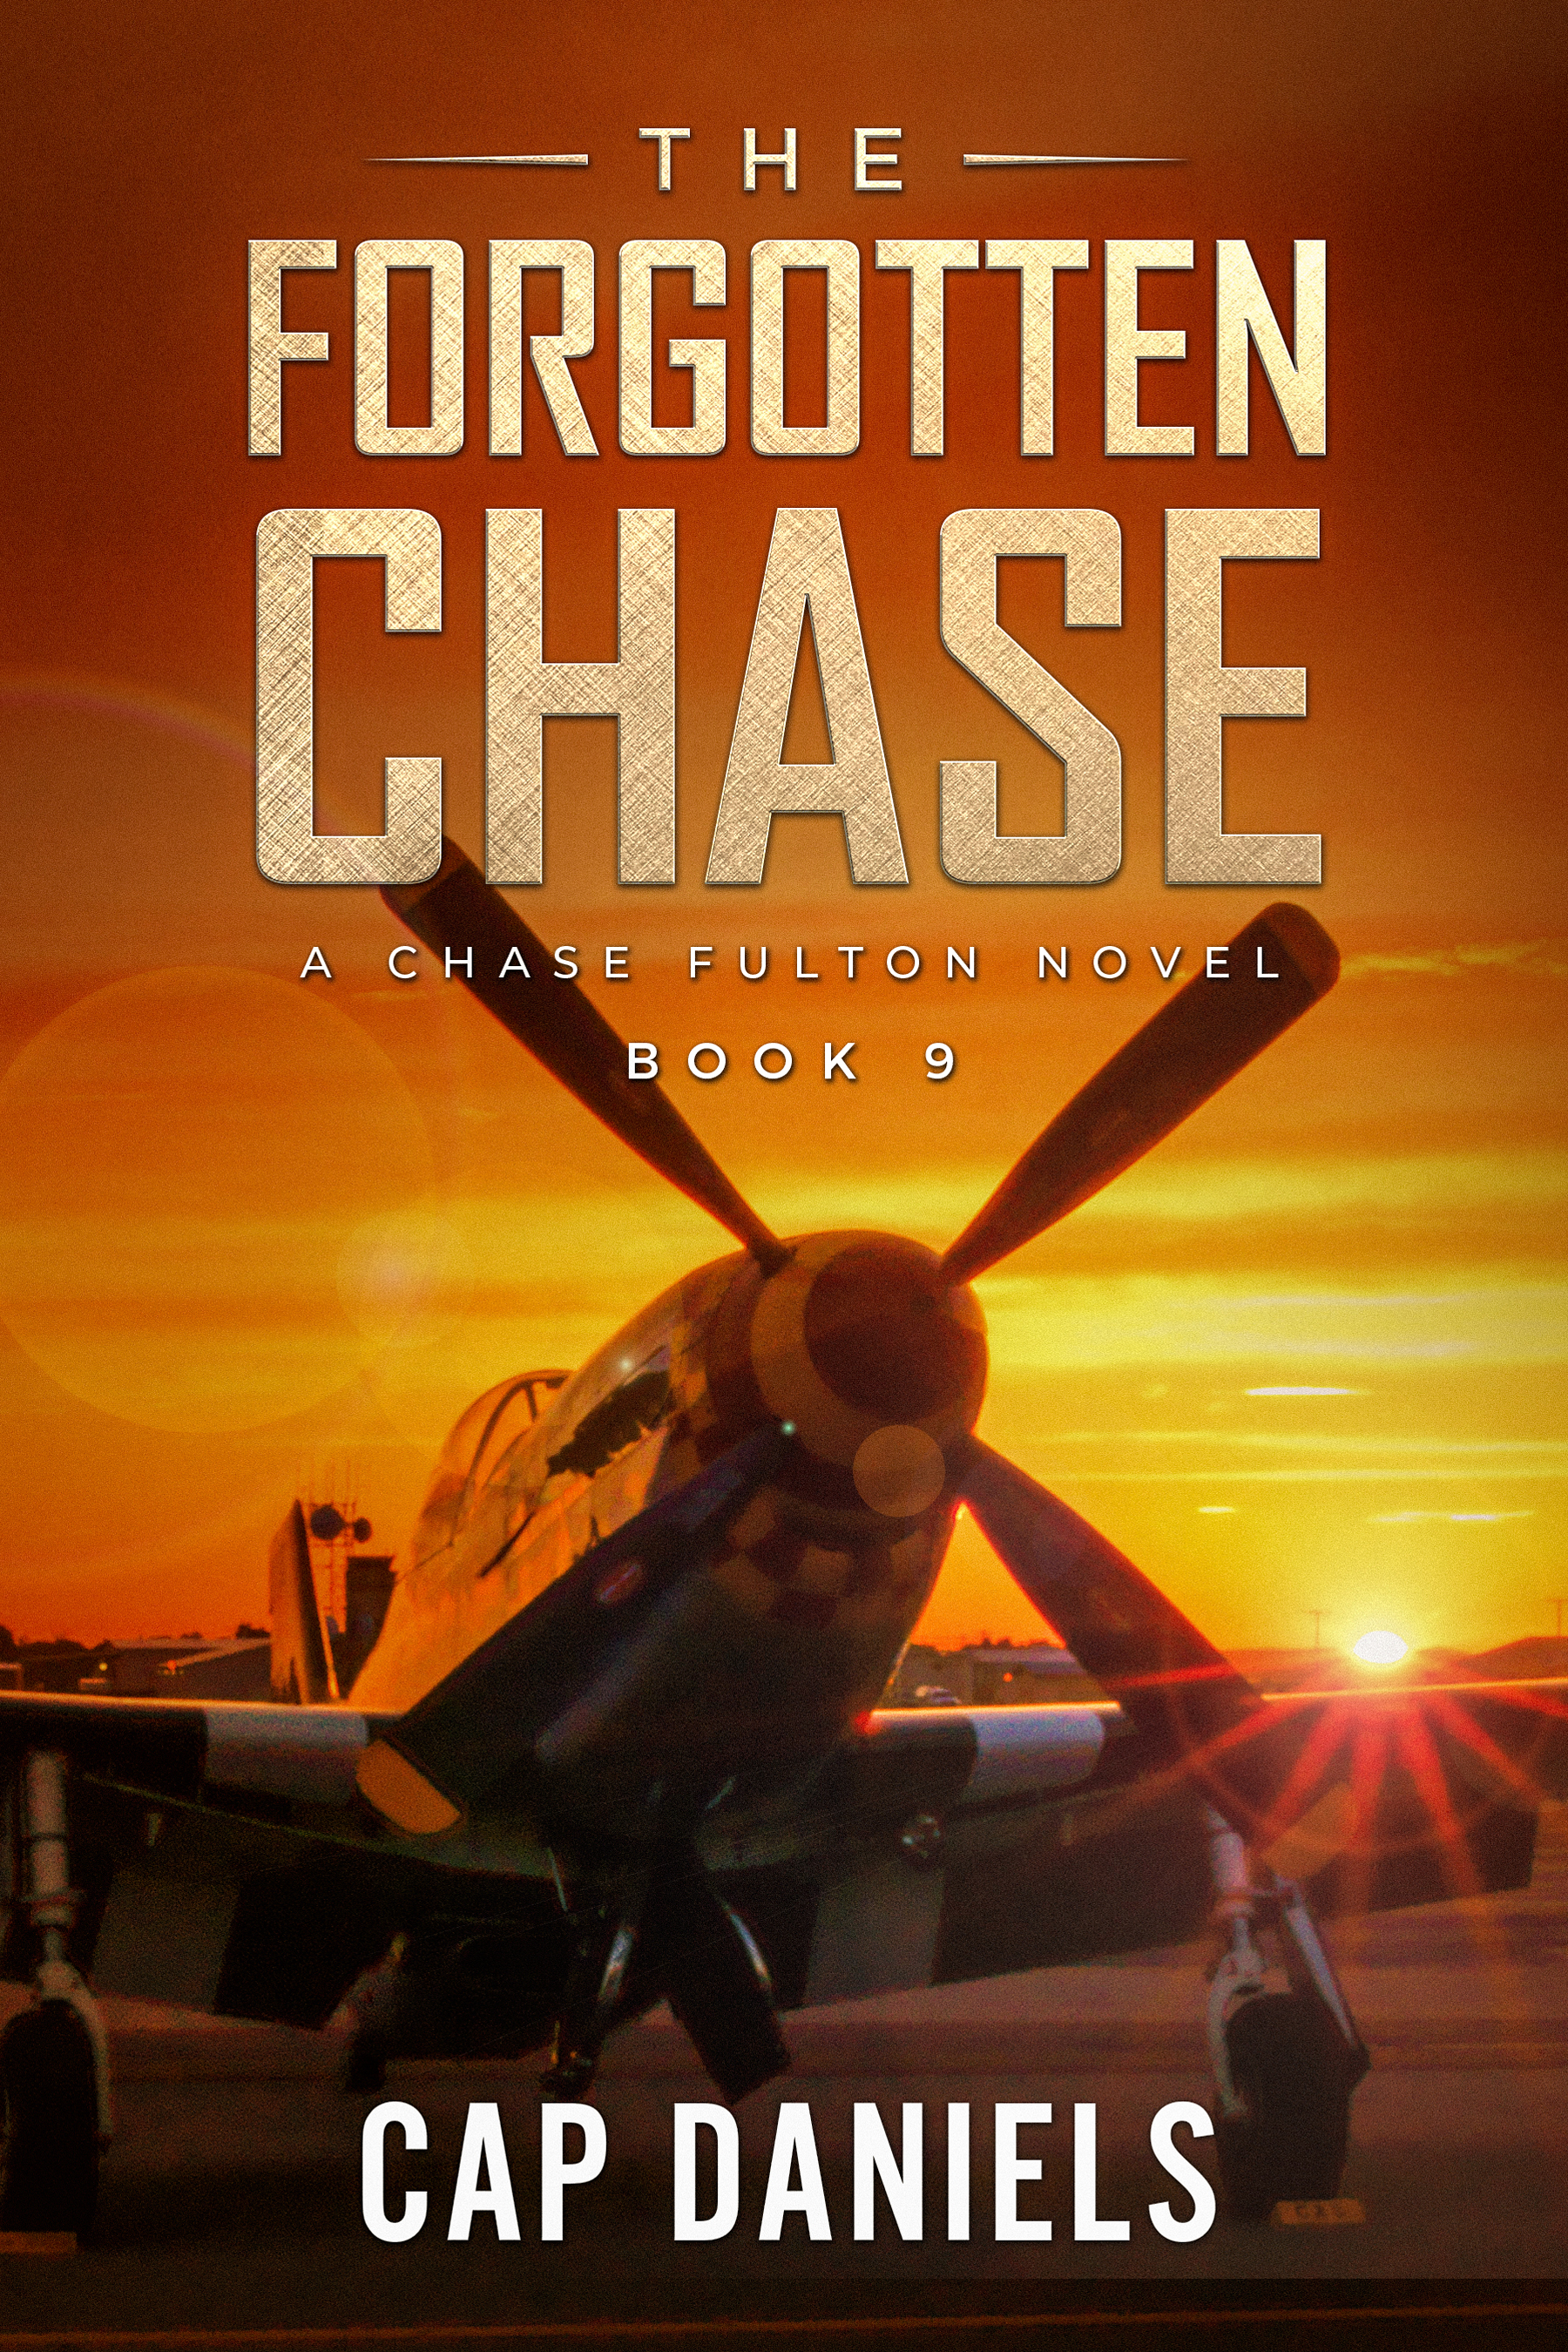 The Forgotten Chase (Chase Fulton #9)